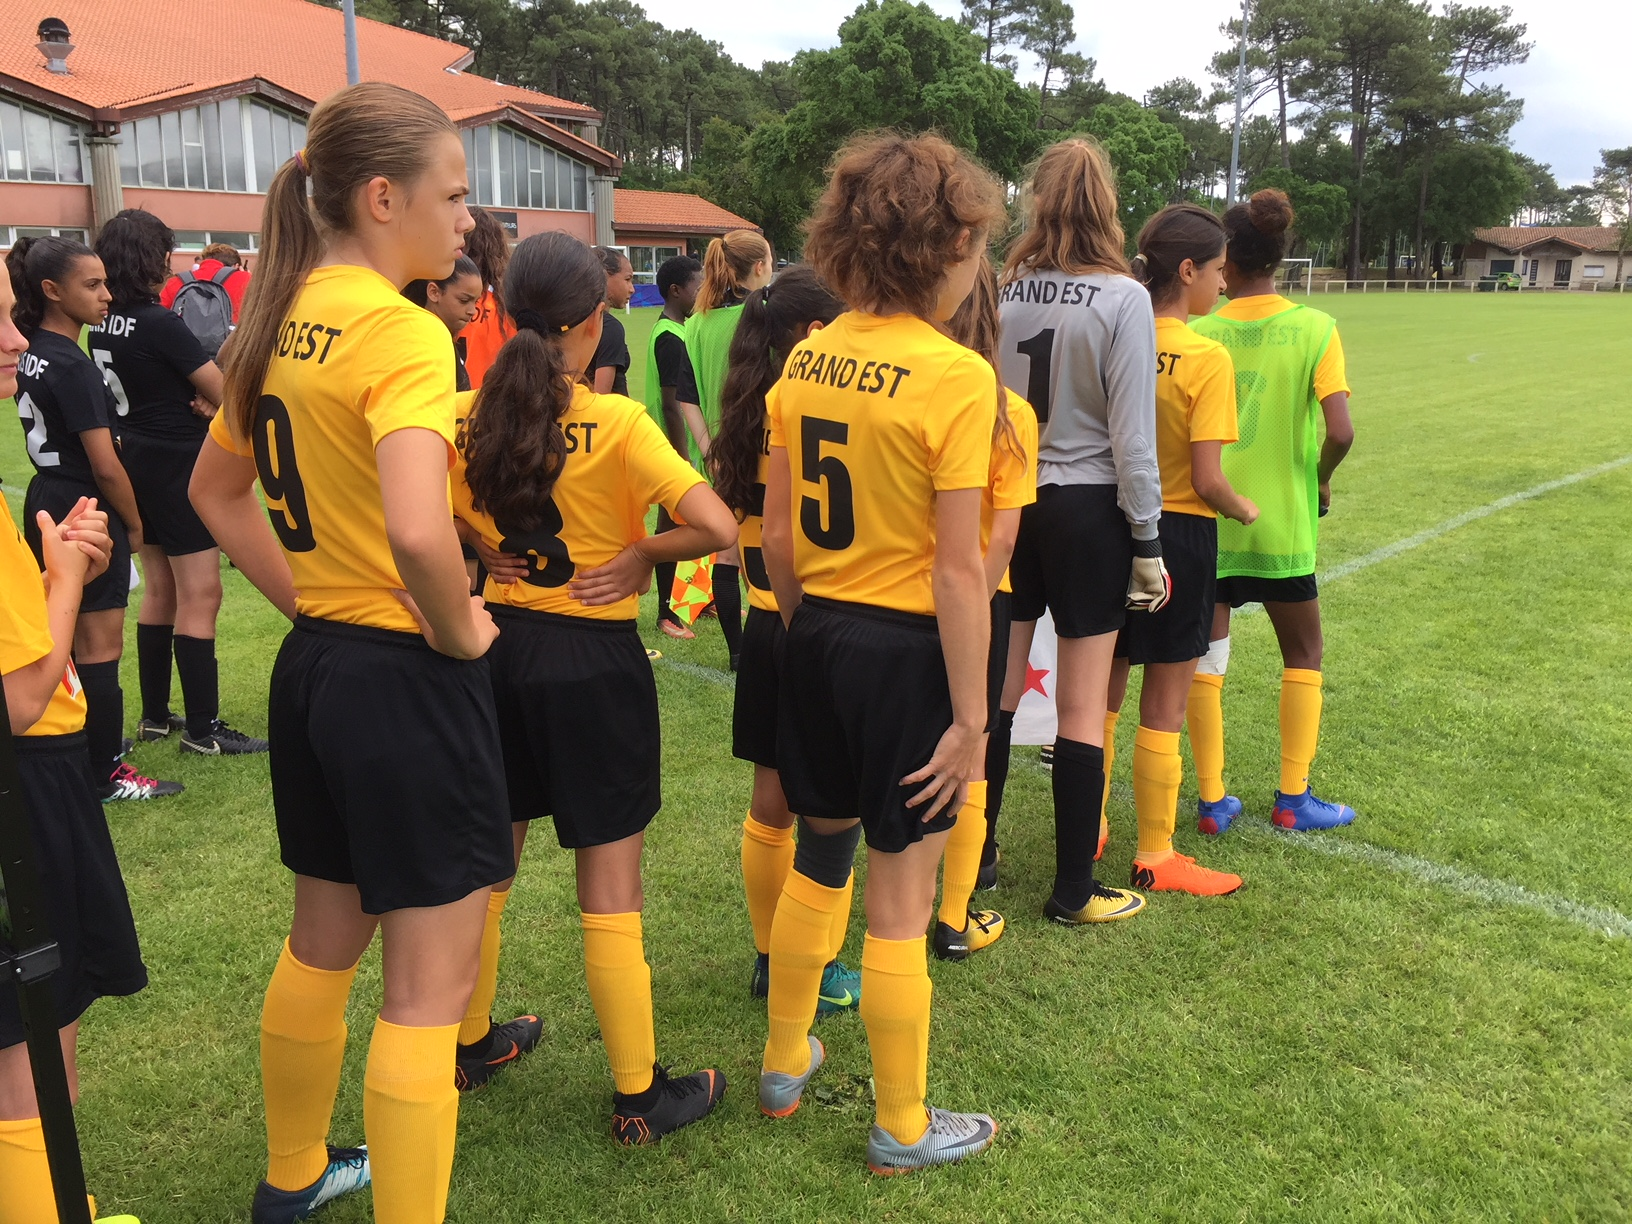 Les U13f Du Stade De Reims A La Finale Nationale District Marne